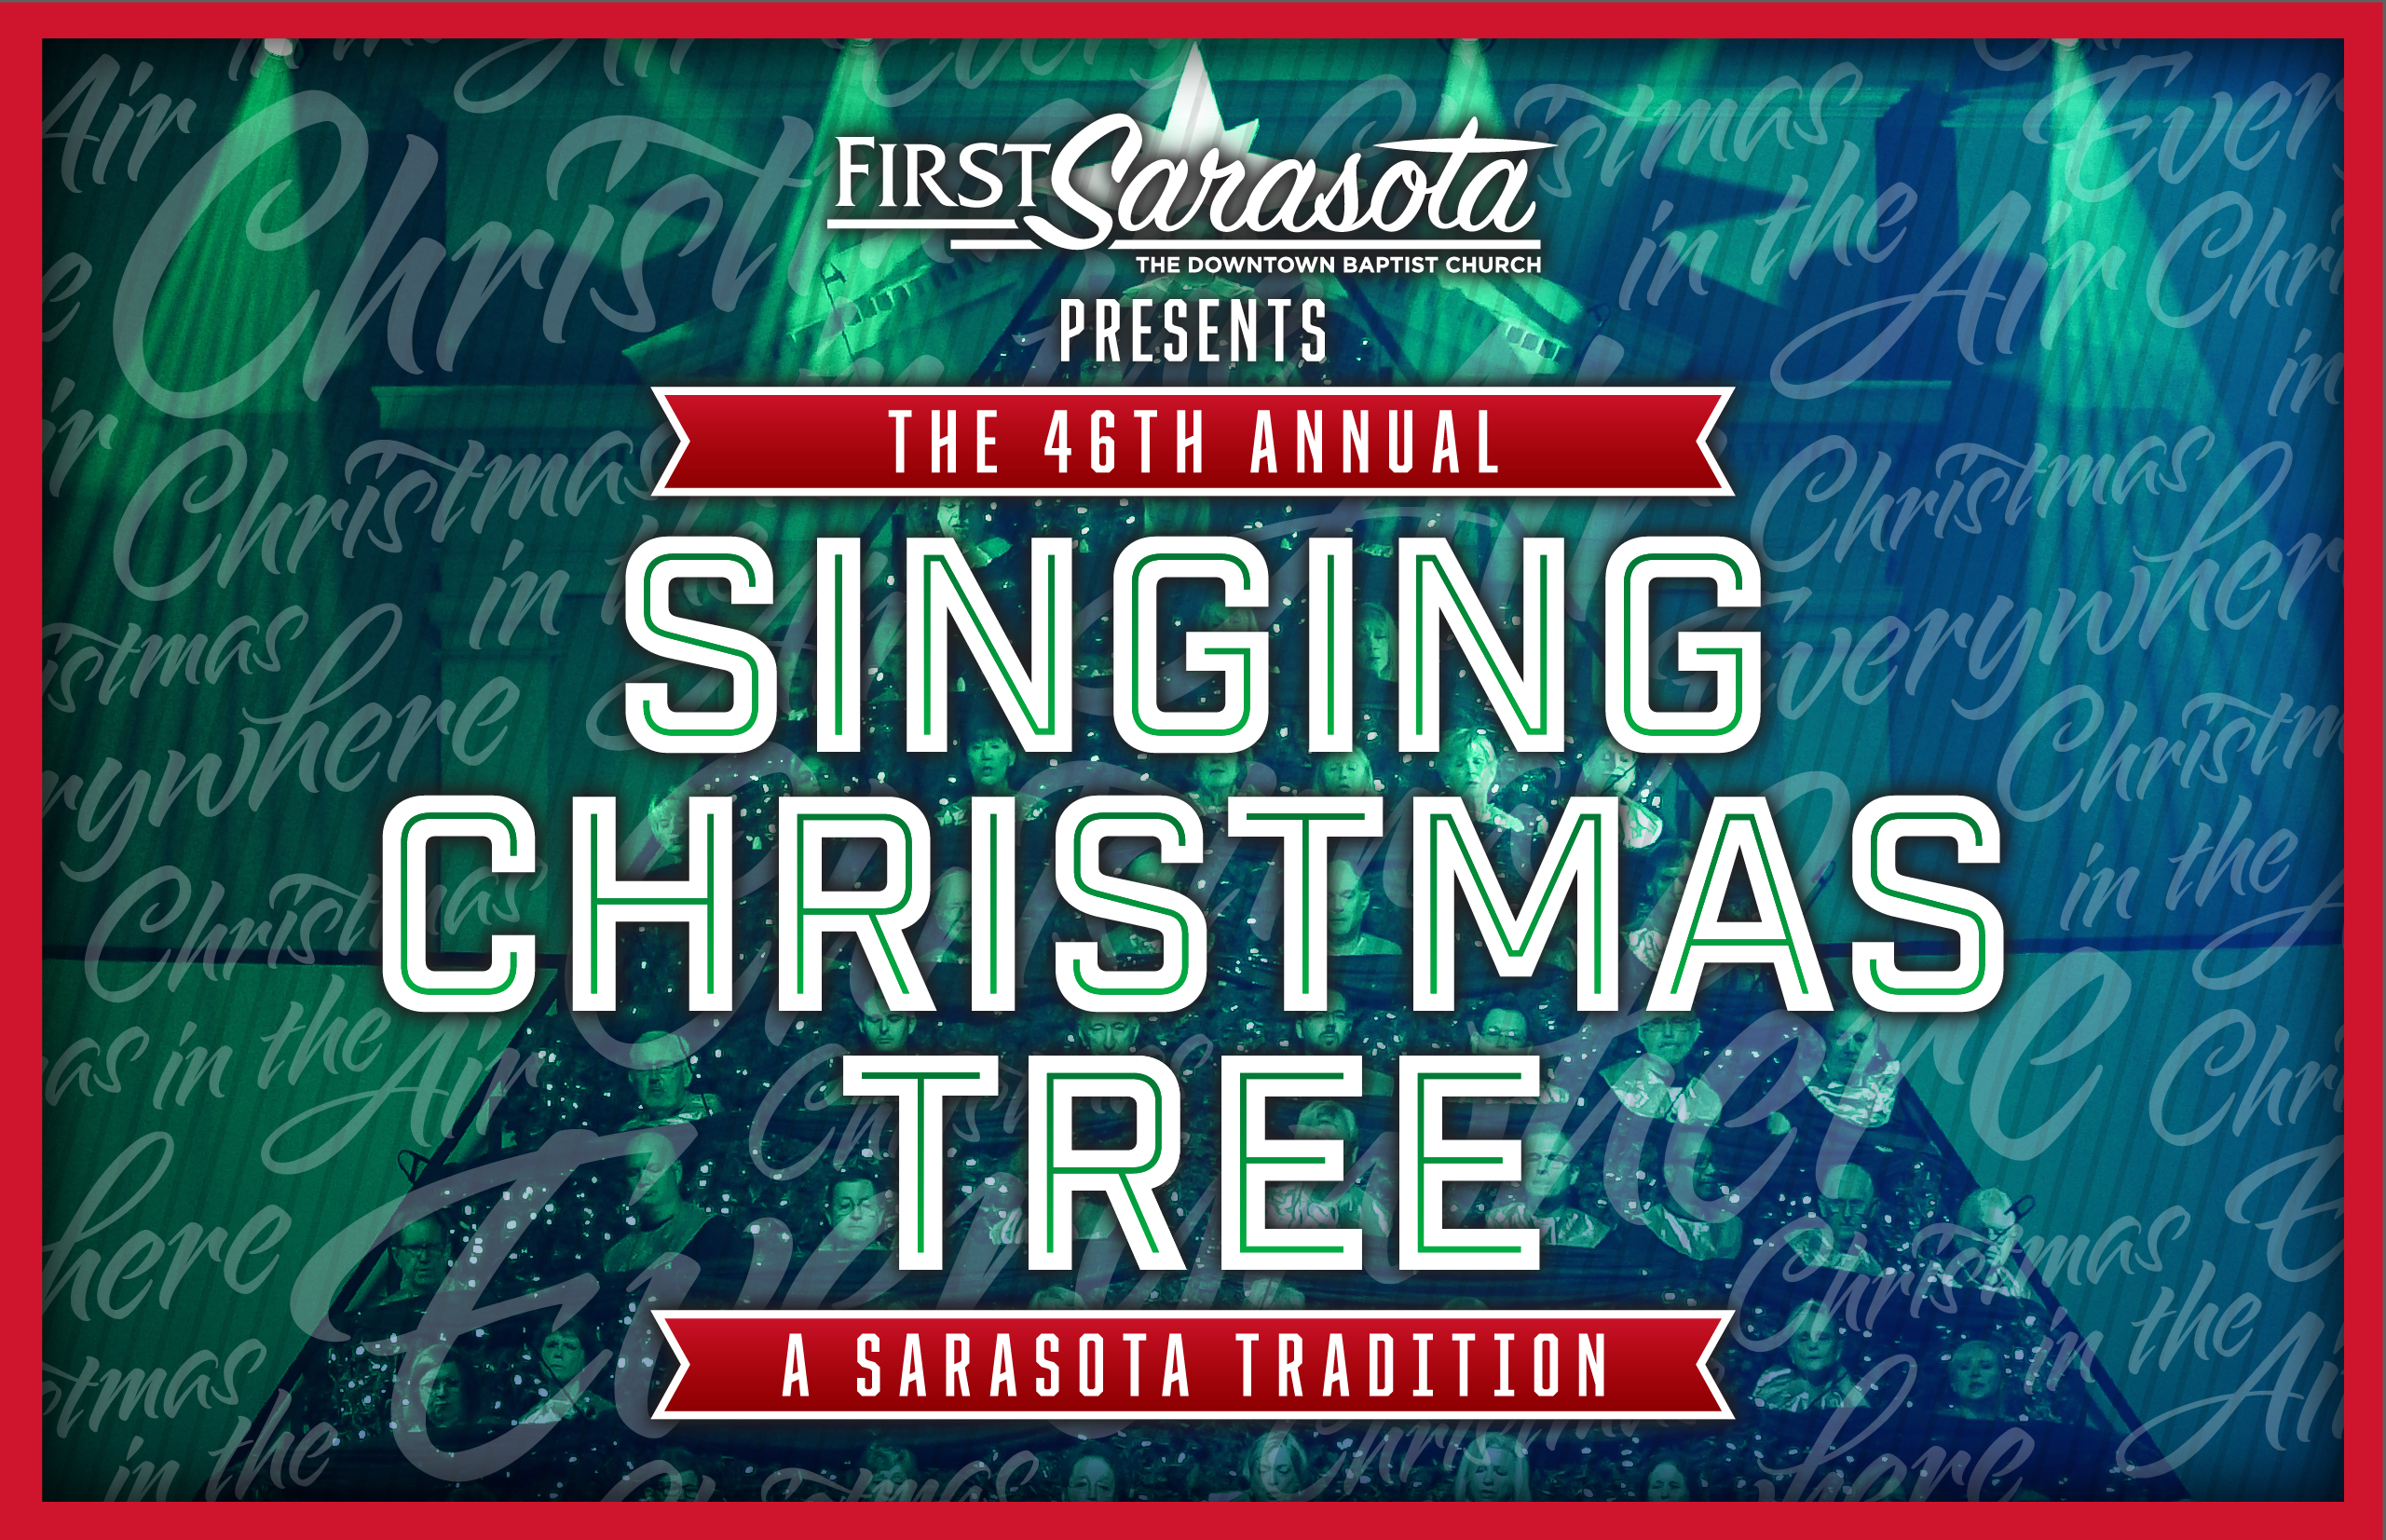 The 46th Annual Singing Christmas Tree